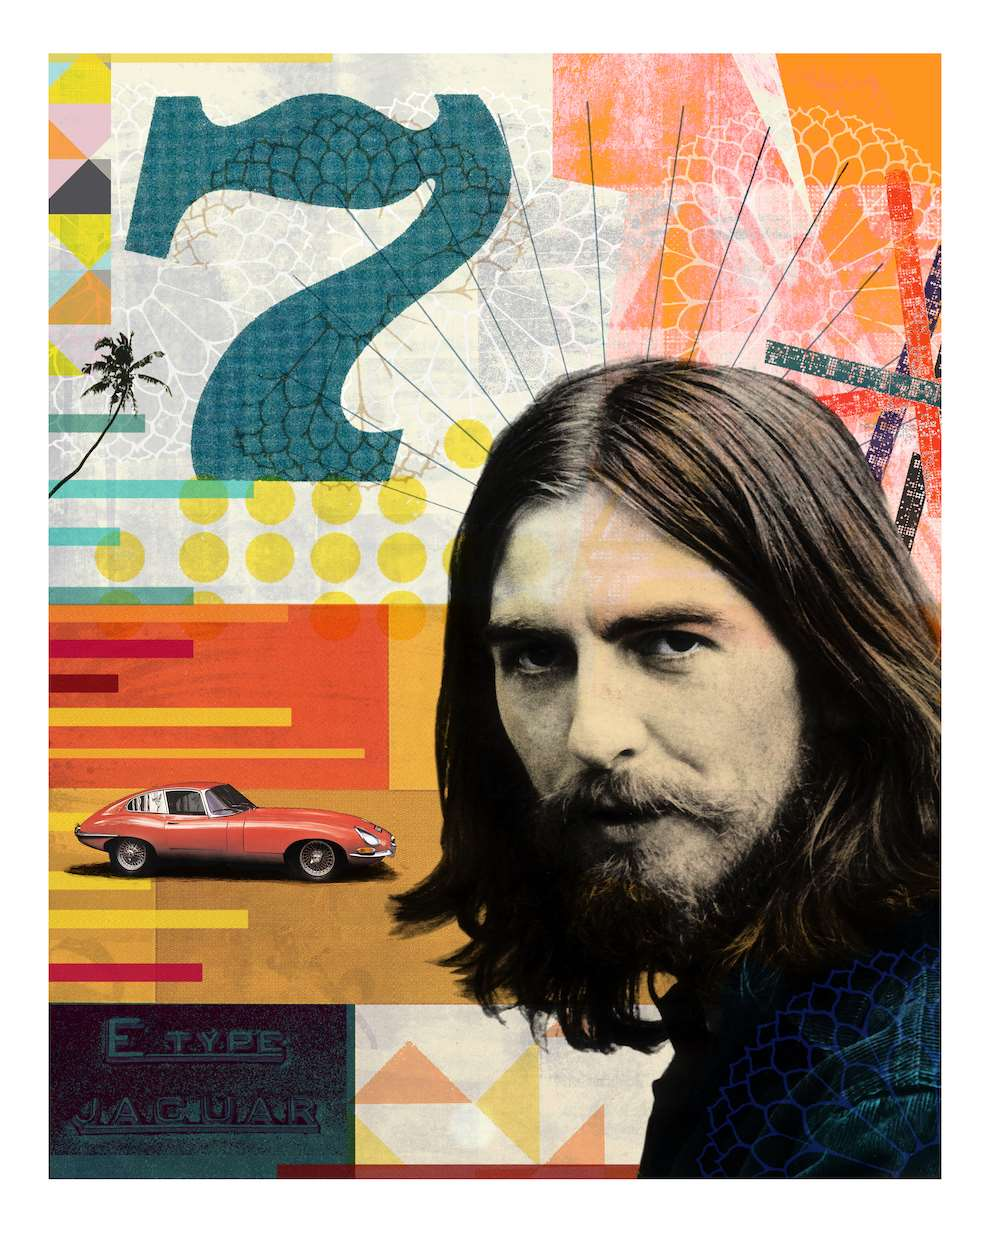 Jackie Parsons, Combined collage, print and photography piece of the Beatles.